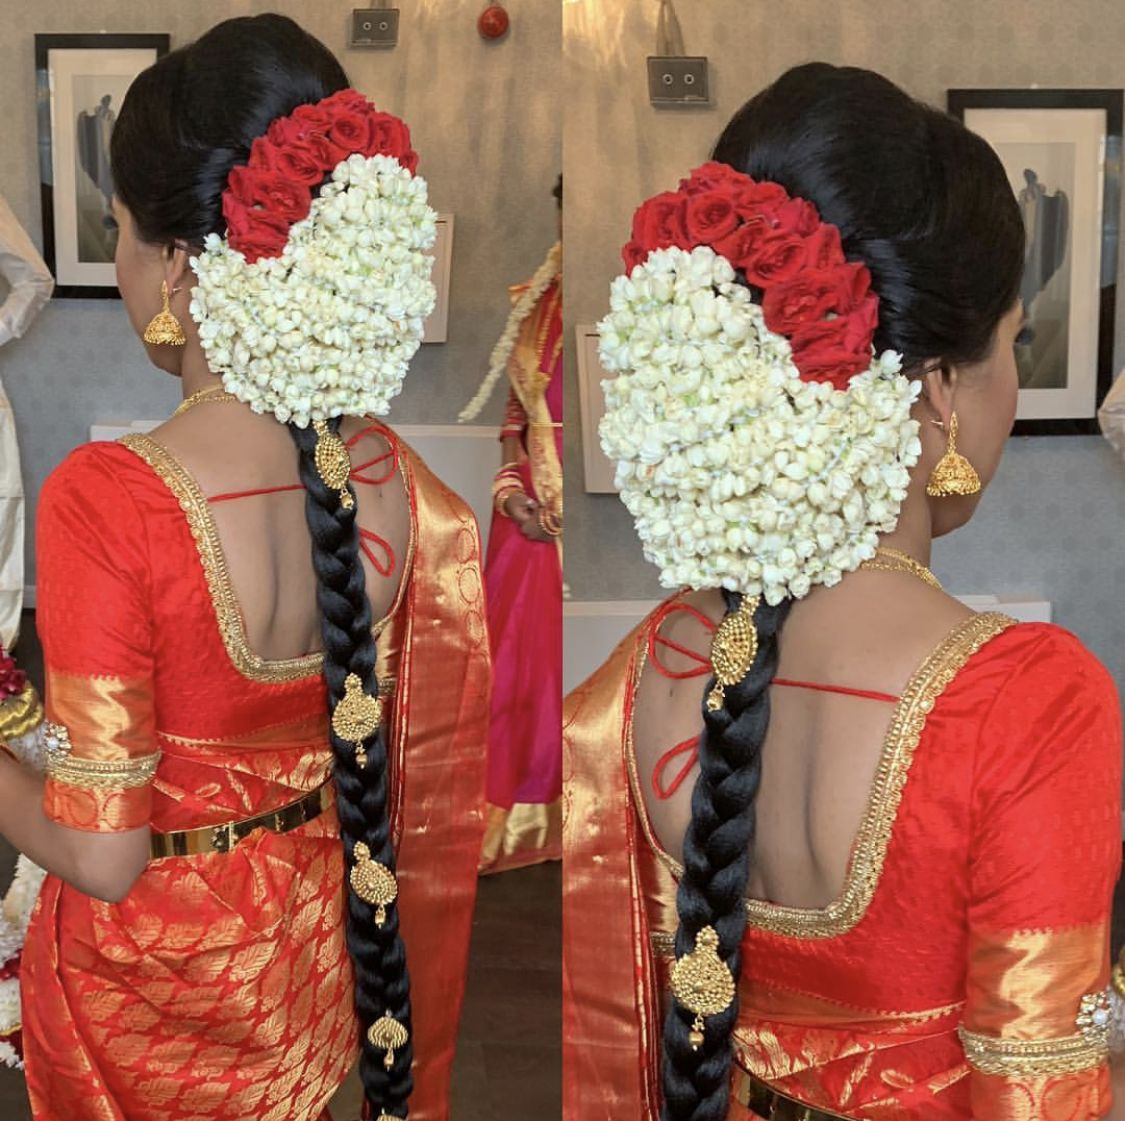 South Indian Wedding Braid Bridal Hairdo Indian Bridal Hairstyles South Indian Wedding Hairstyles